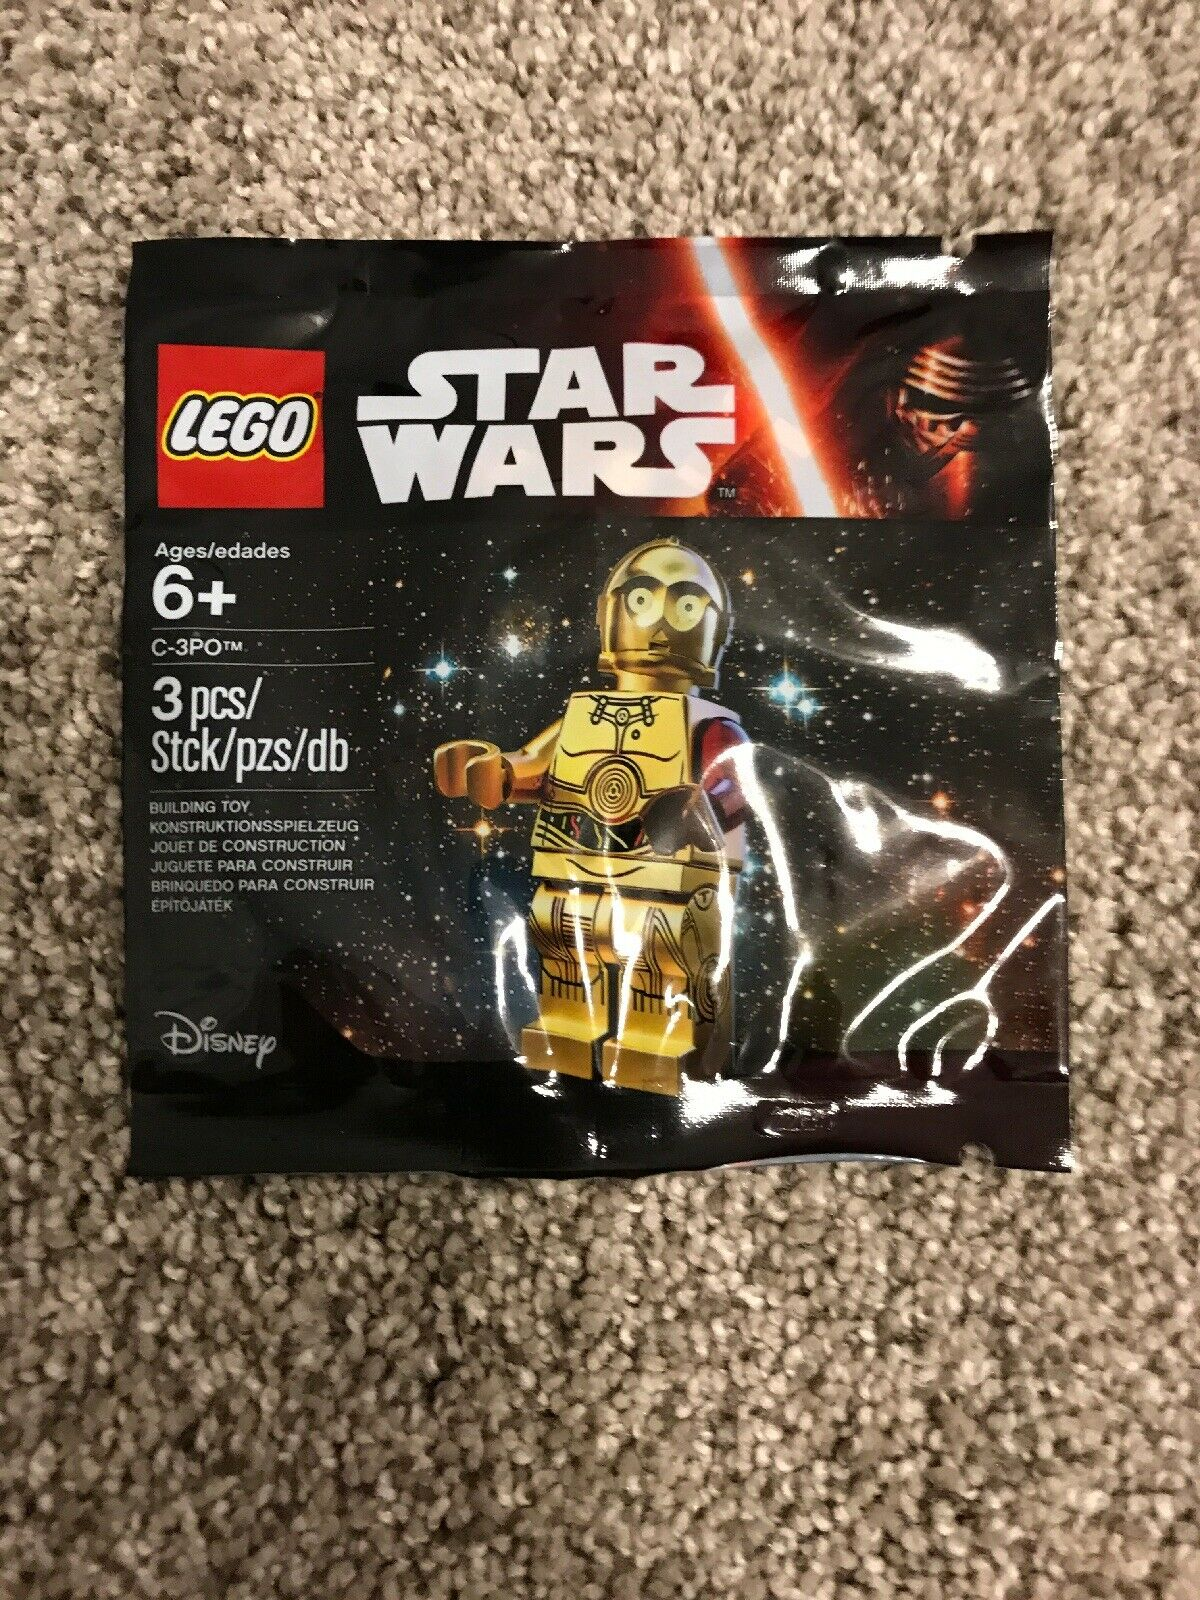 Lego Star Wars The Force Awakens Rare Red Arm C-3PO 5002948 New Polybag Promo